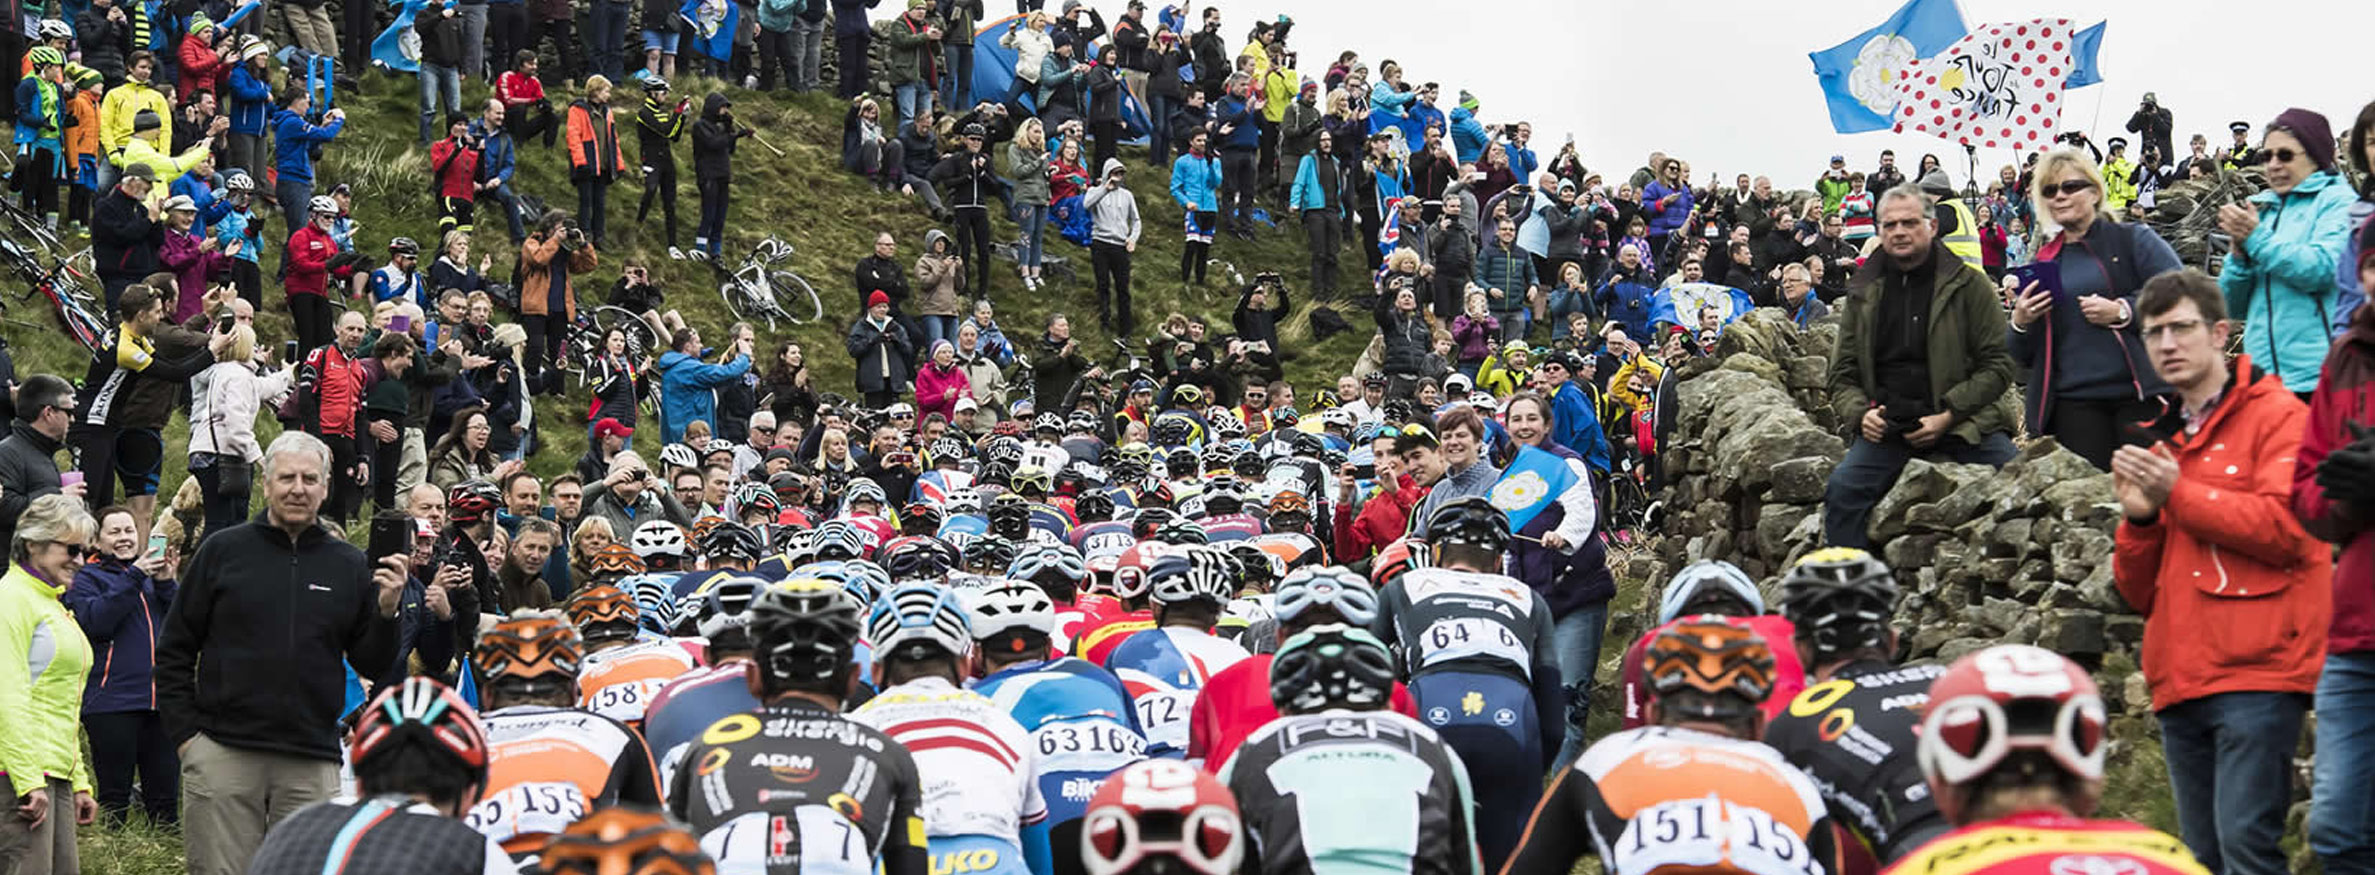 Cyclists in The Tour de Yorkshire in North Yorkshire